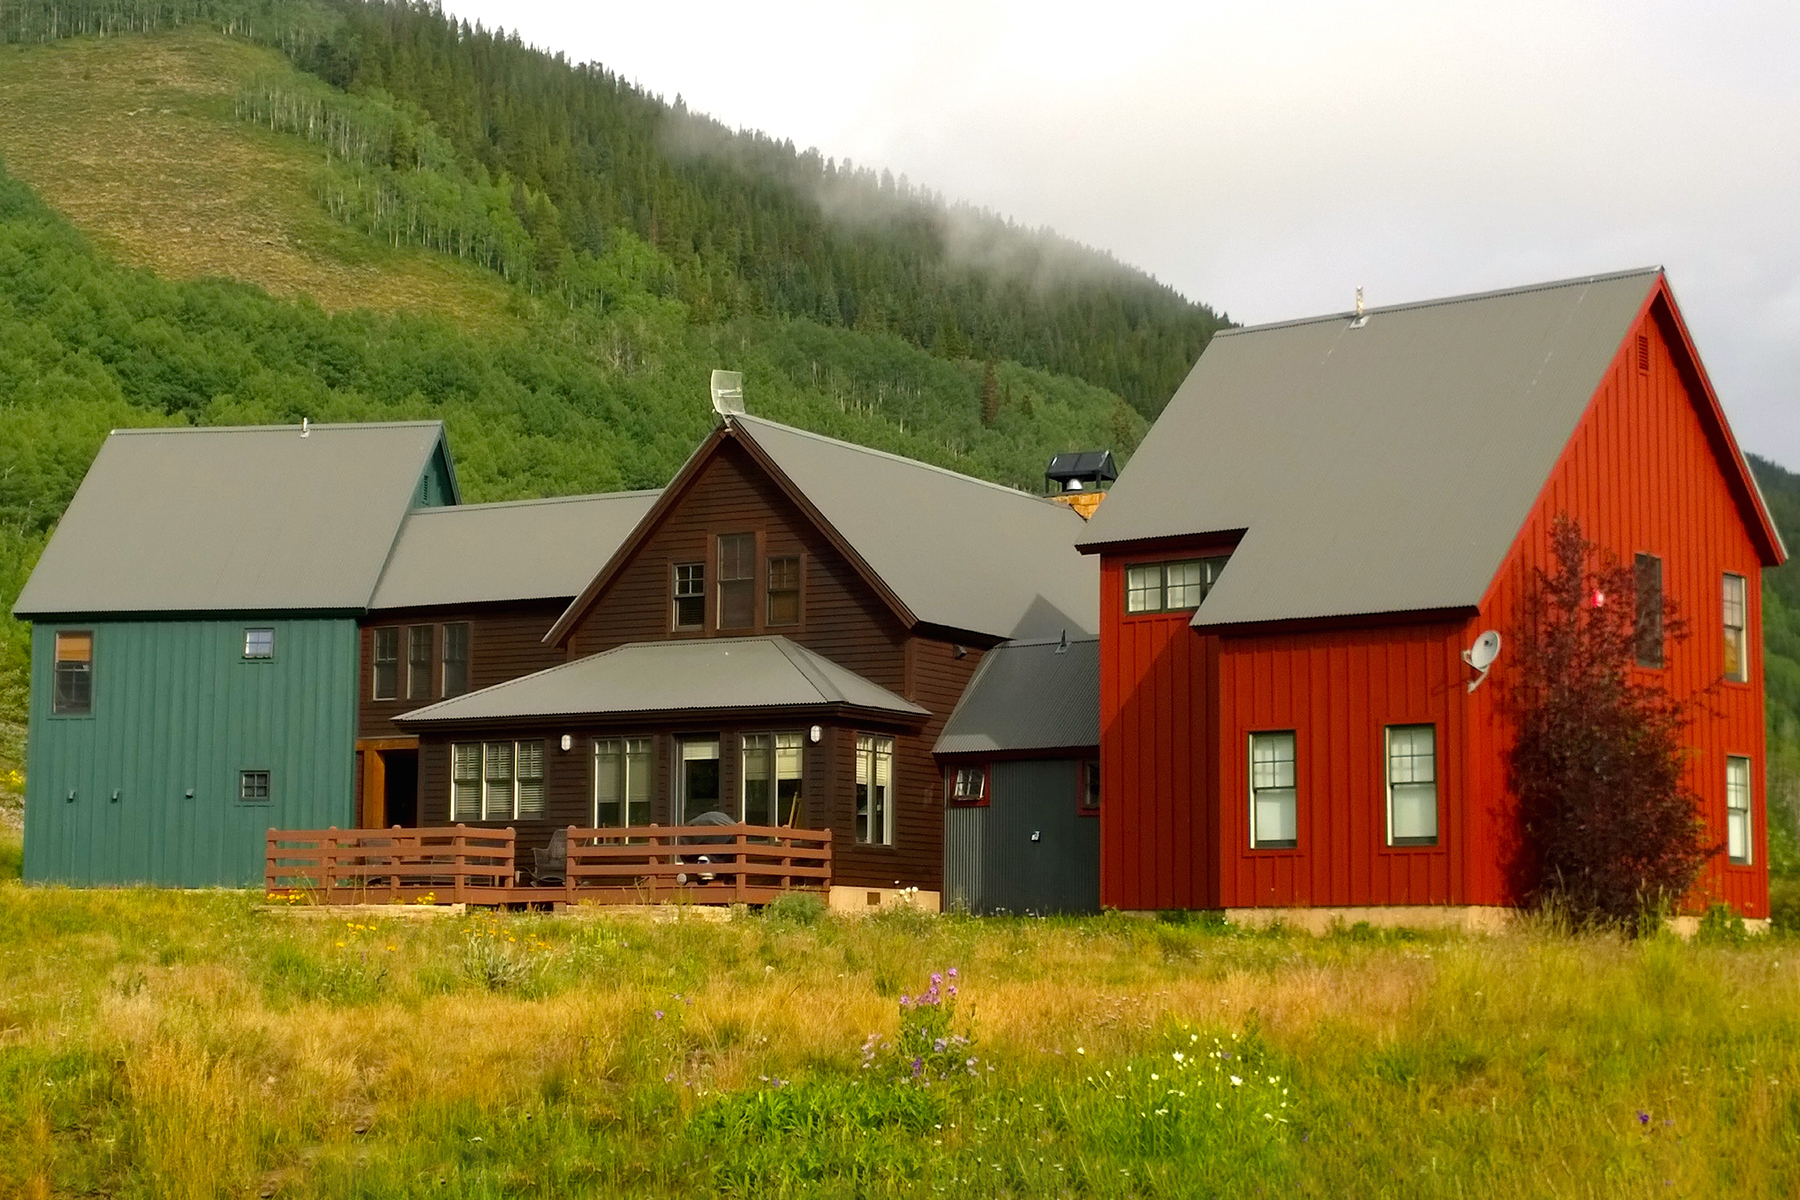 Casa Unifamiliar por un Venta en Distinguished Residence 781 County Road 4, Crested Butte, Colorado, 81224 Estados Unidos